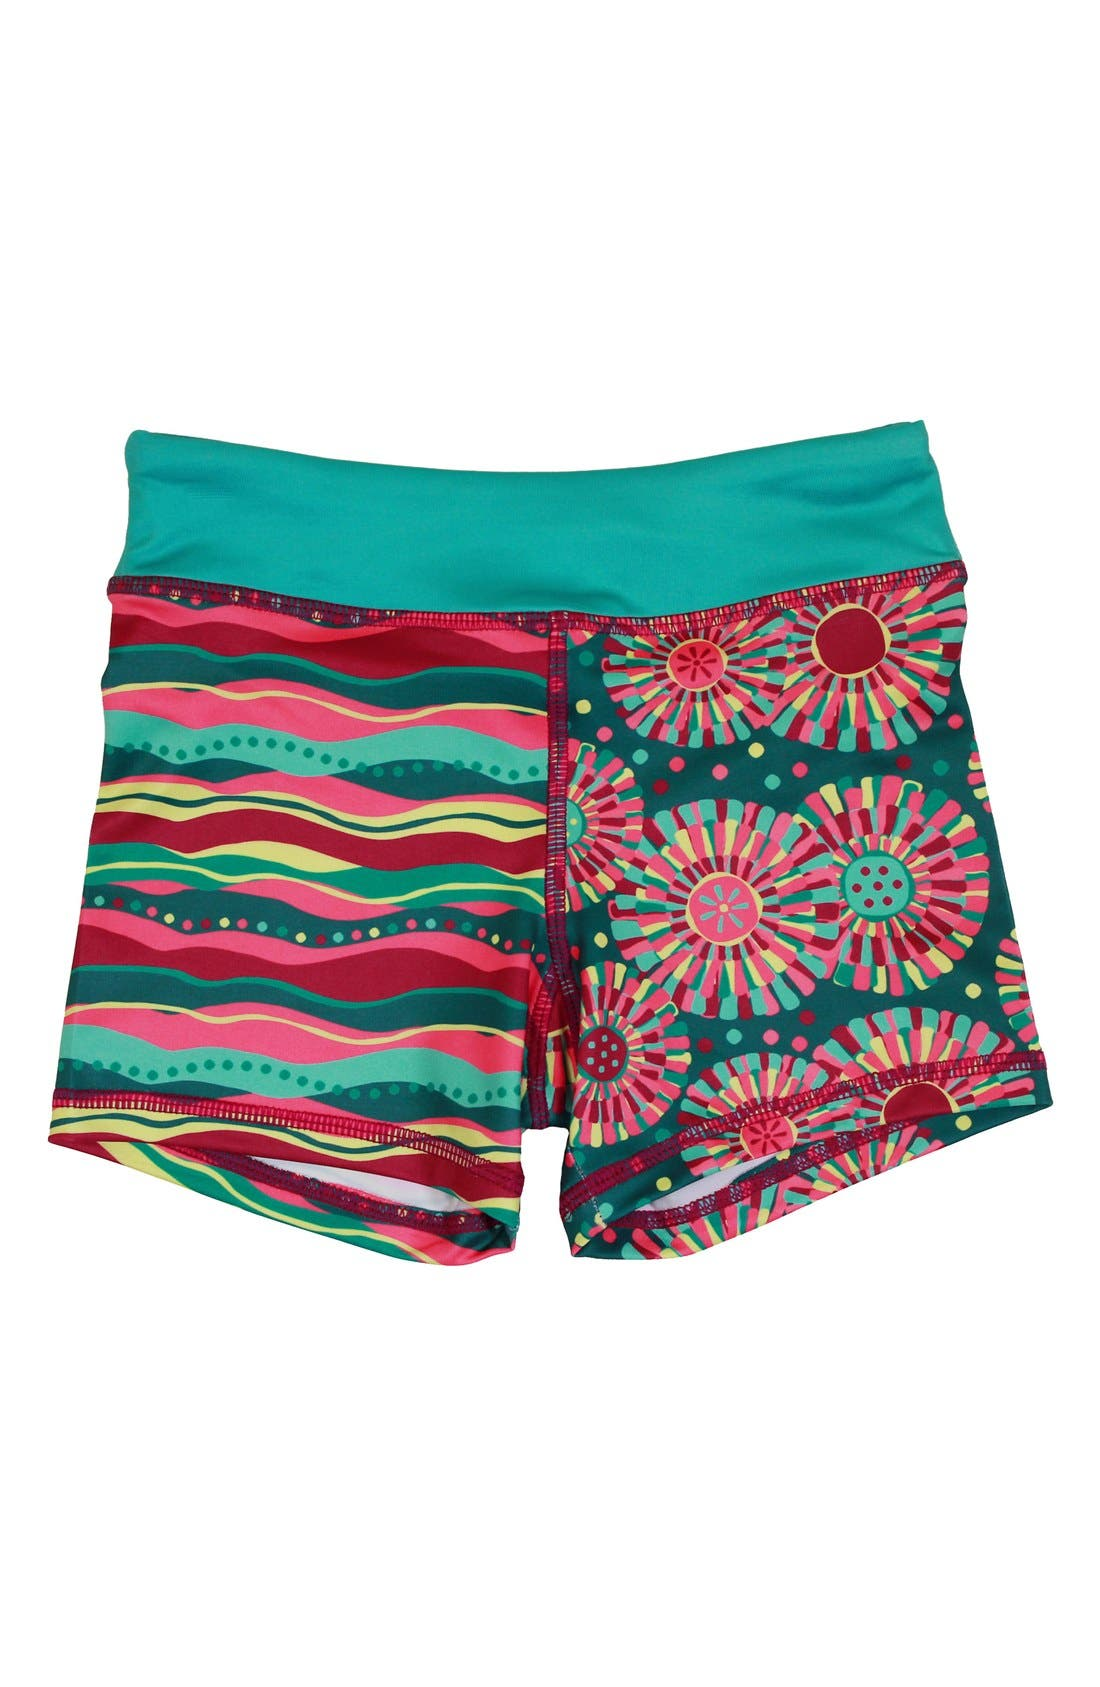 Alternate Image 1 Selected - CHOOZE 'Splits' Mixed Print Shorts (Little Girls & Big Girls)